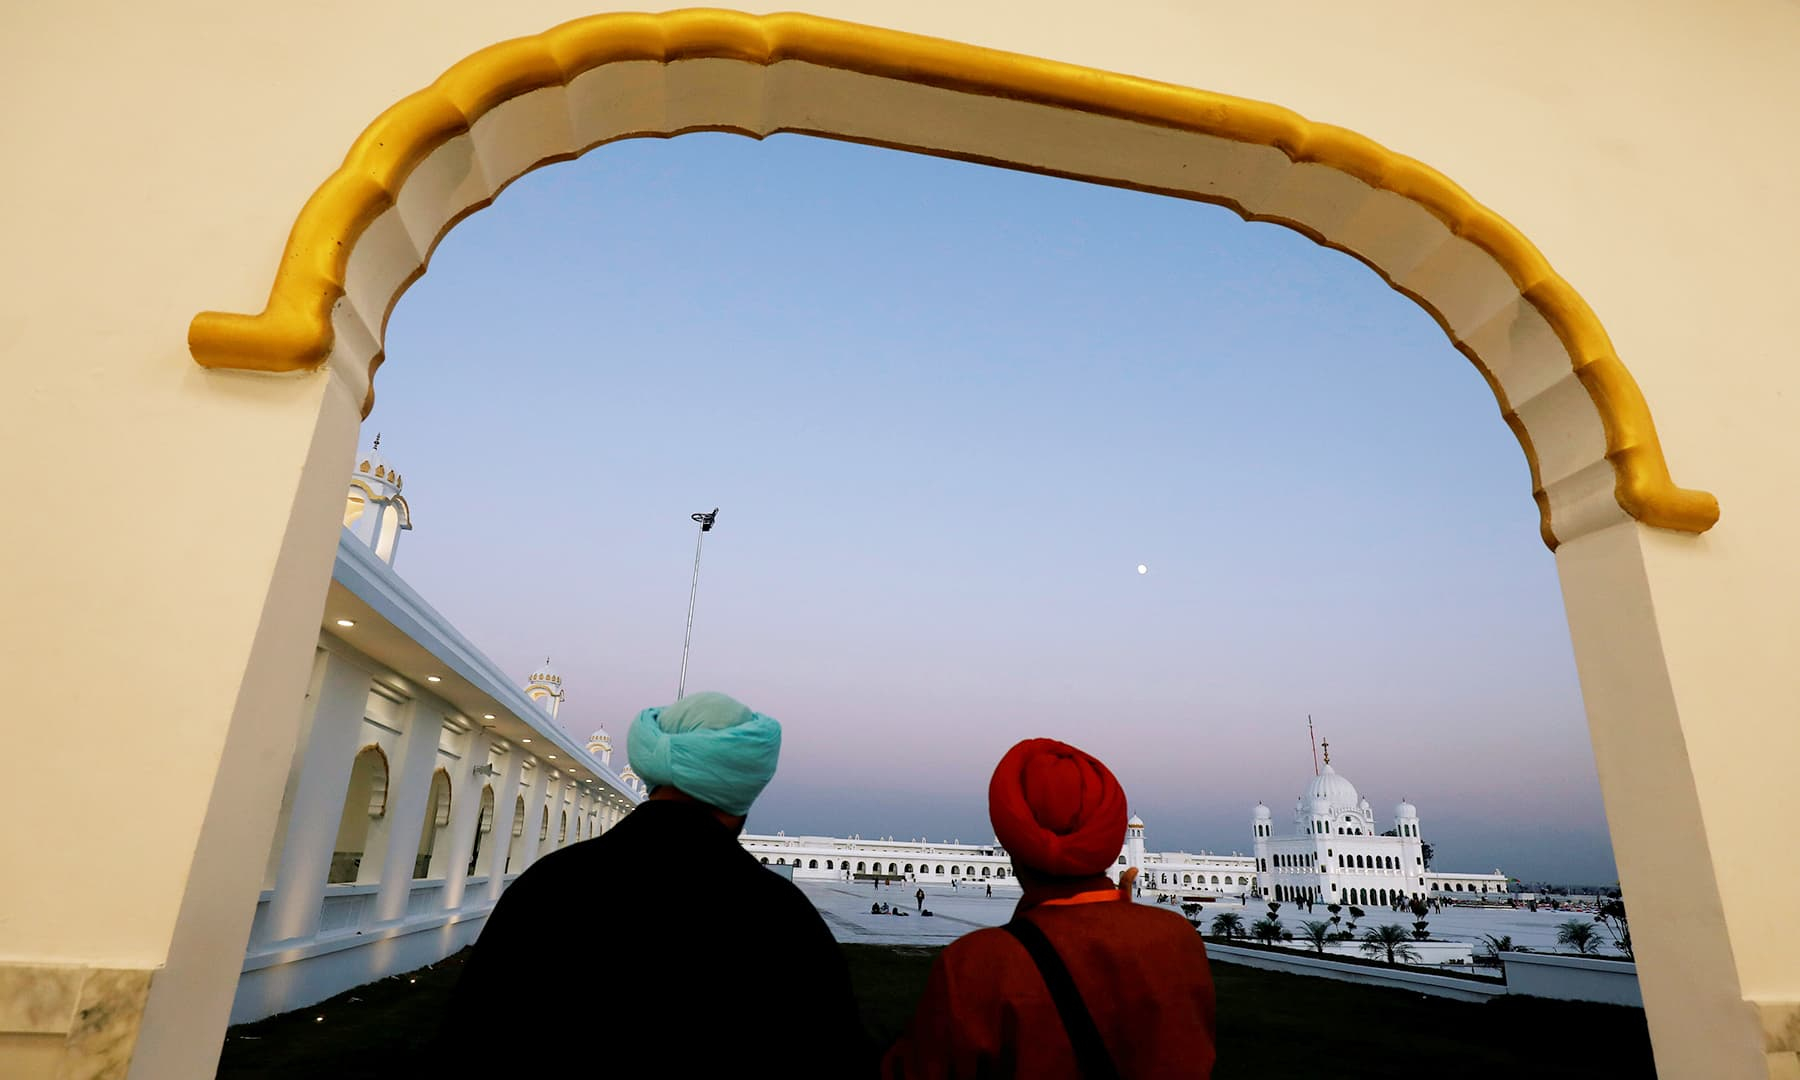 Indian Sikh pilgrims take in the view as they visit the Gurdwara Darbar Sahib in Kartarpur on Saturday. — Reuters